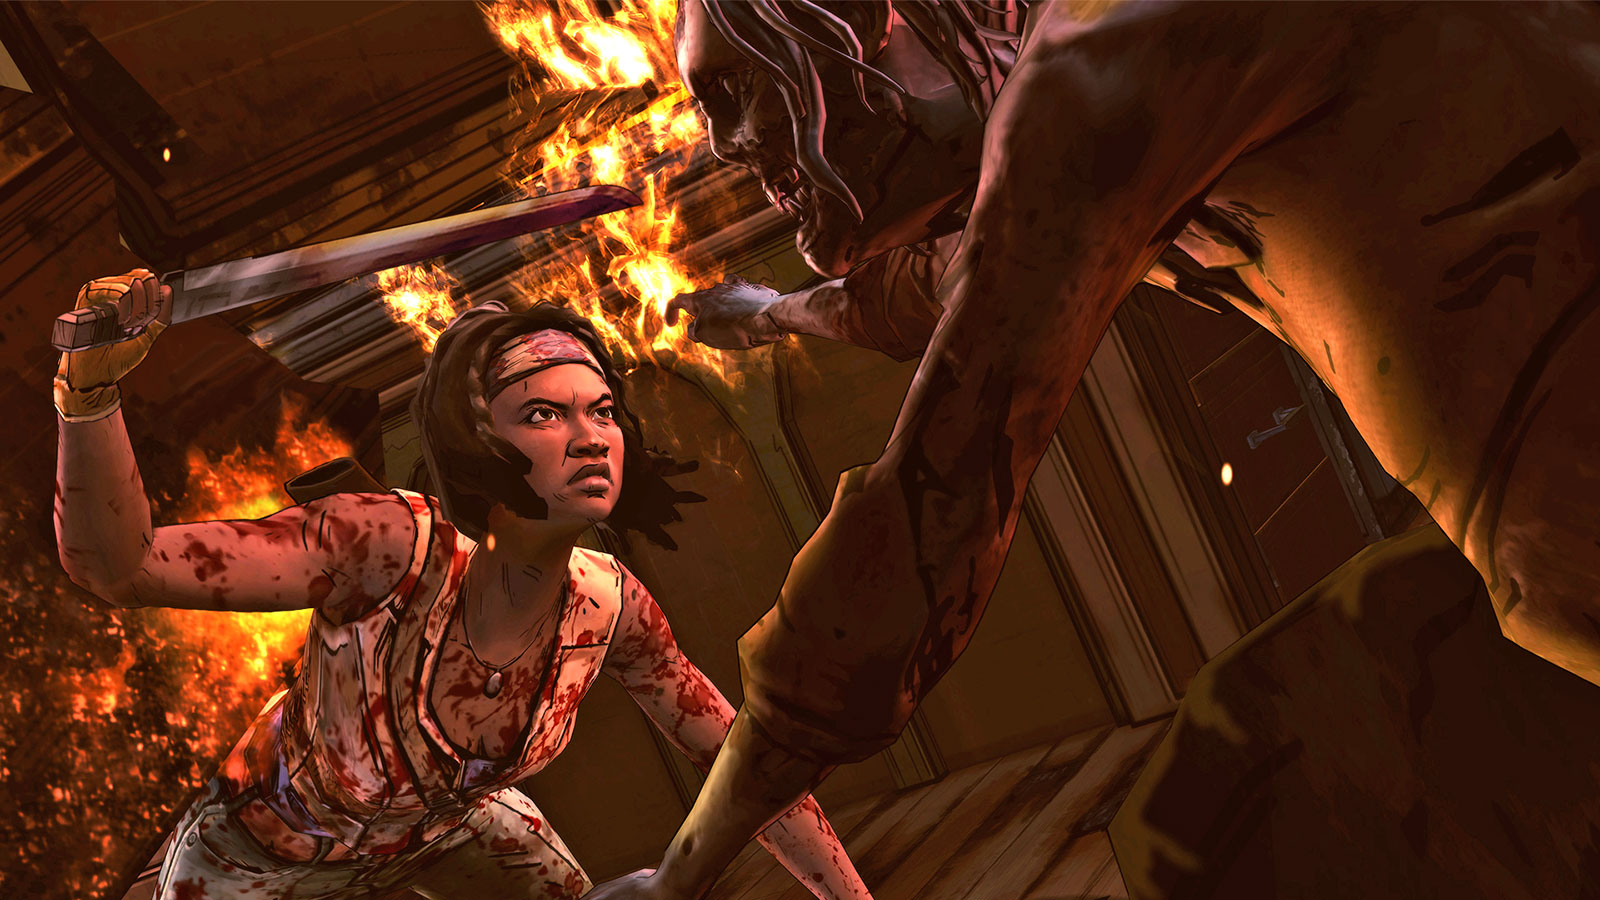 The Walking Dead: Michonne - What We Deserve Review